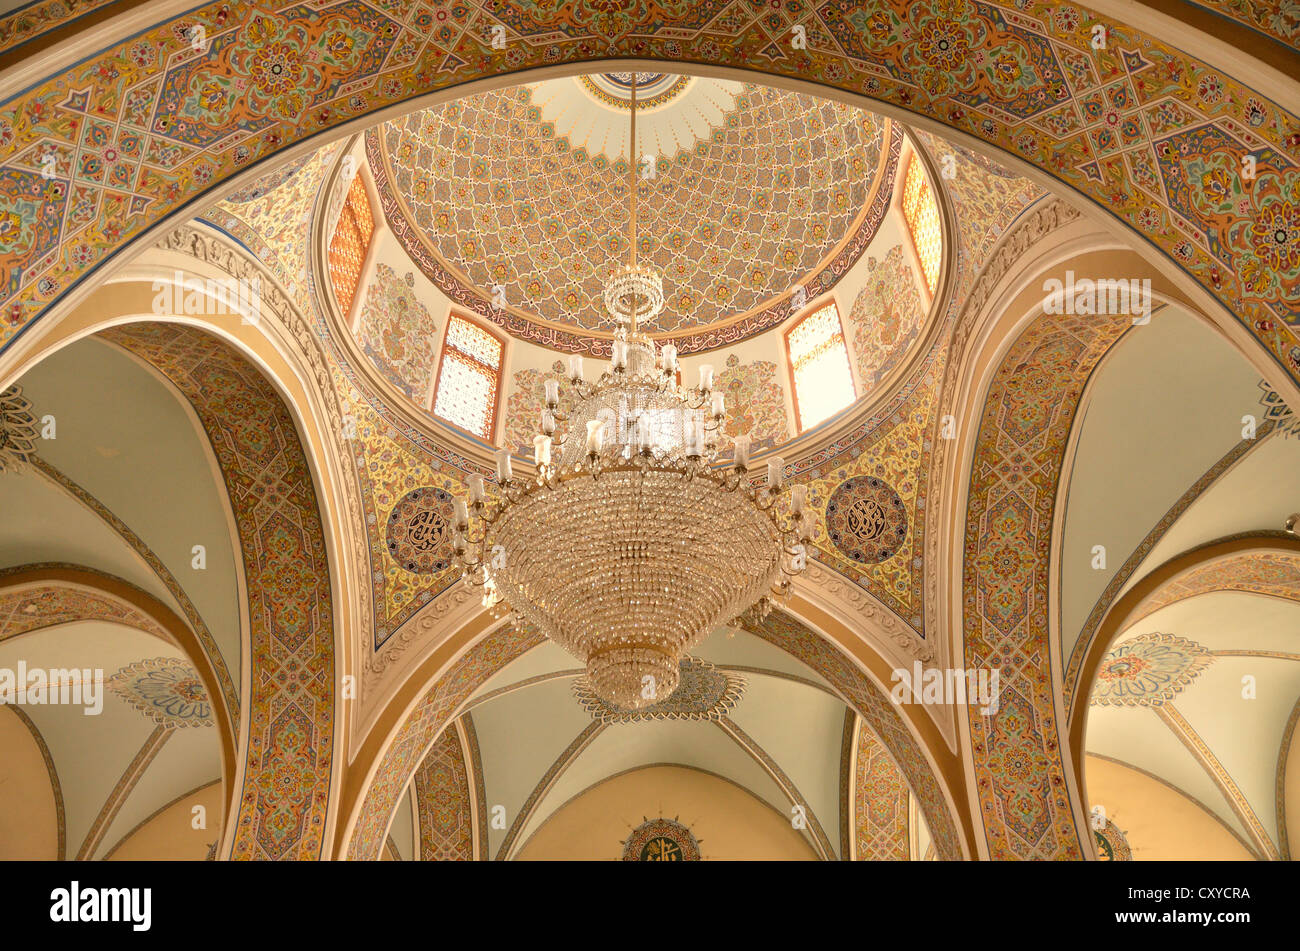 Dome of the Friday Mosque in the historic town centre of Baku, UNESCO World Heritage Site, Azerbaijan, Caucasus, - Stock Image